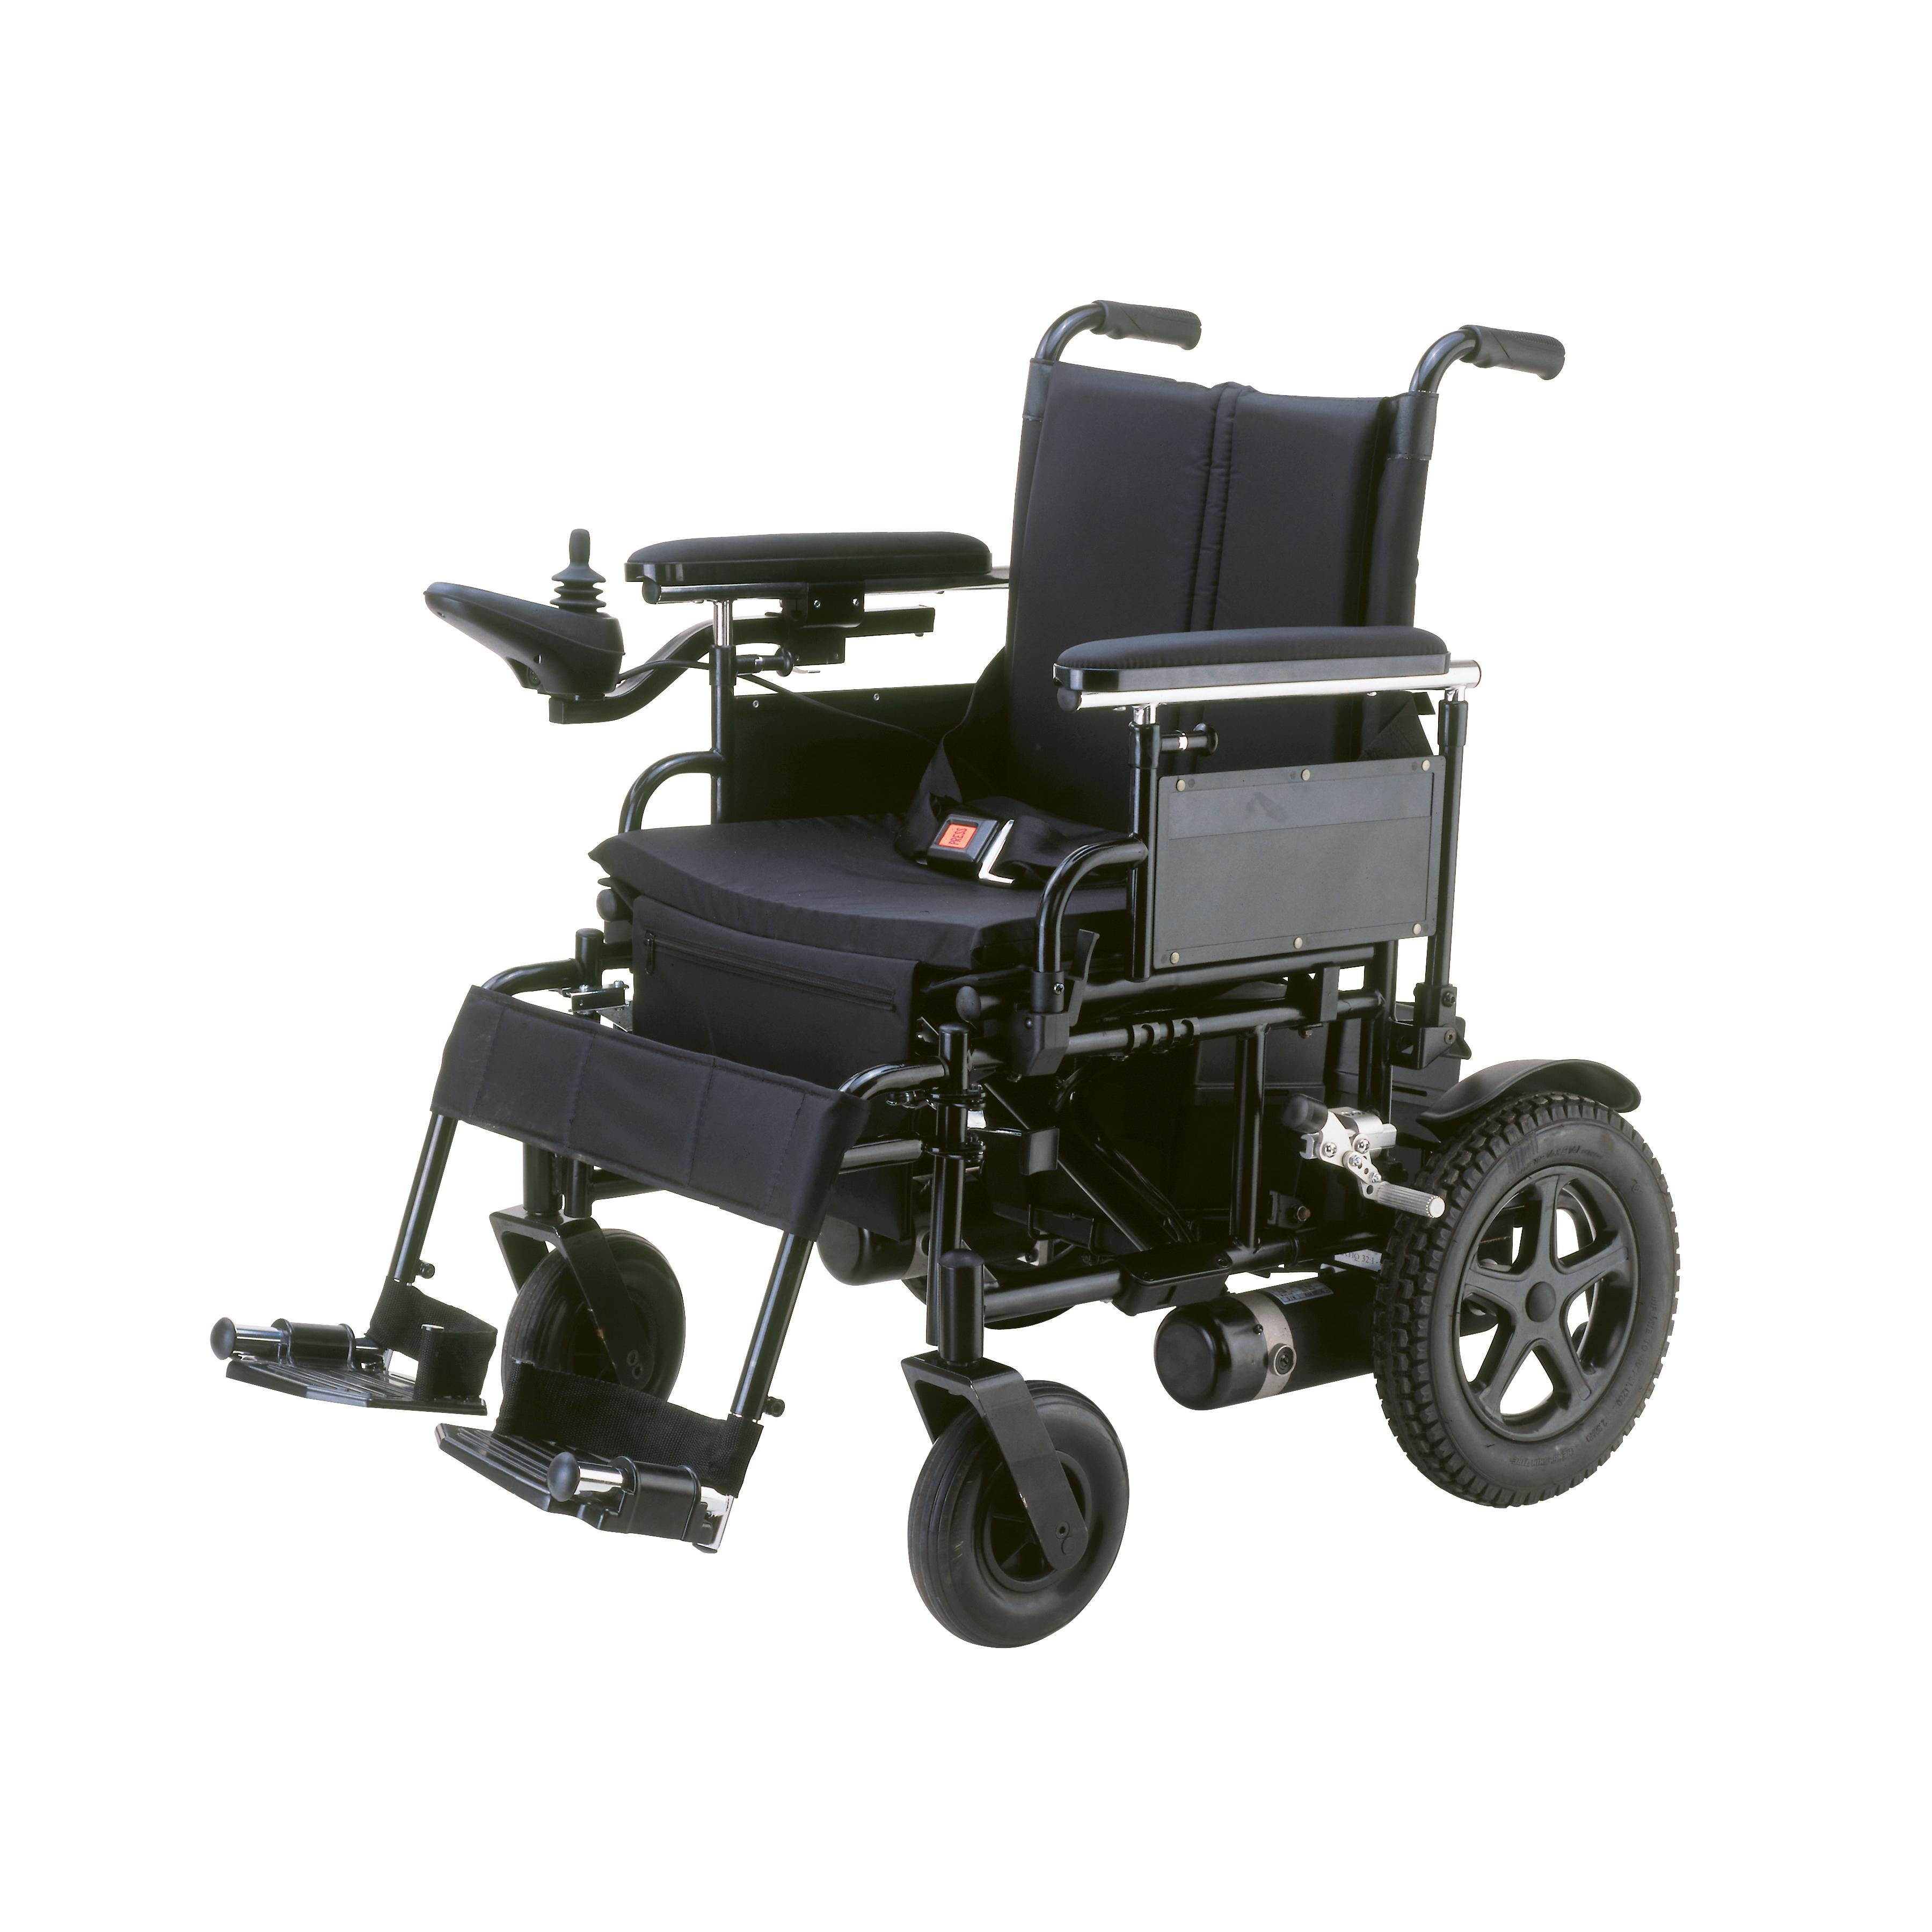 Amazon Electric Wheelchairs Health & Household